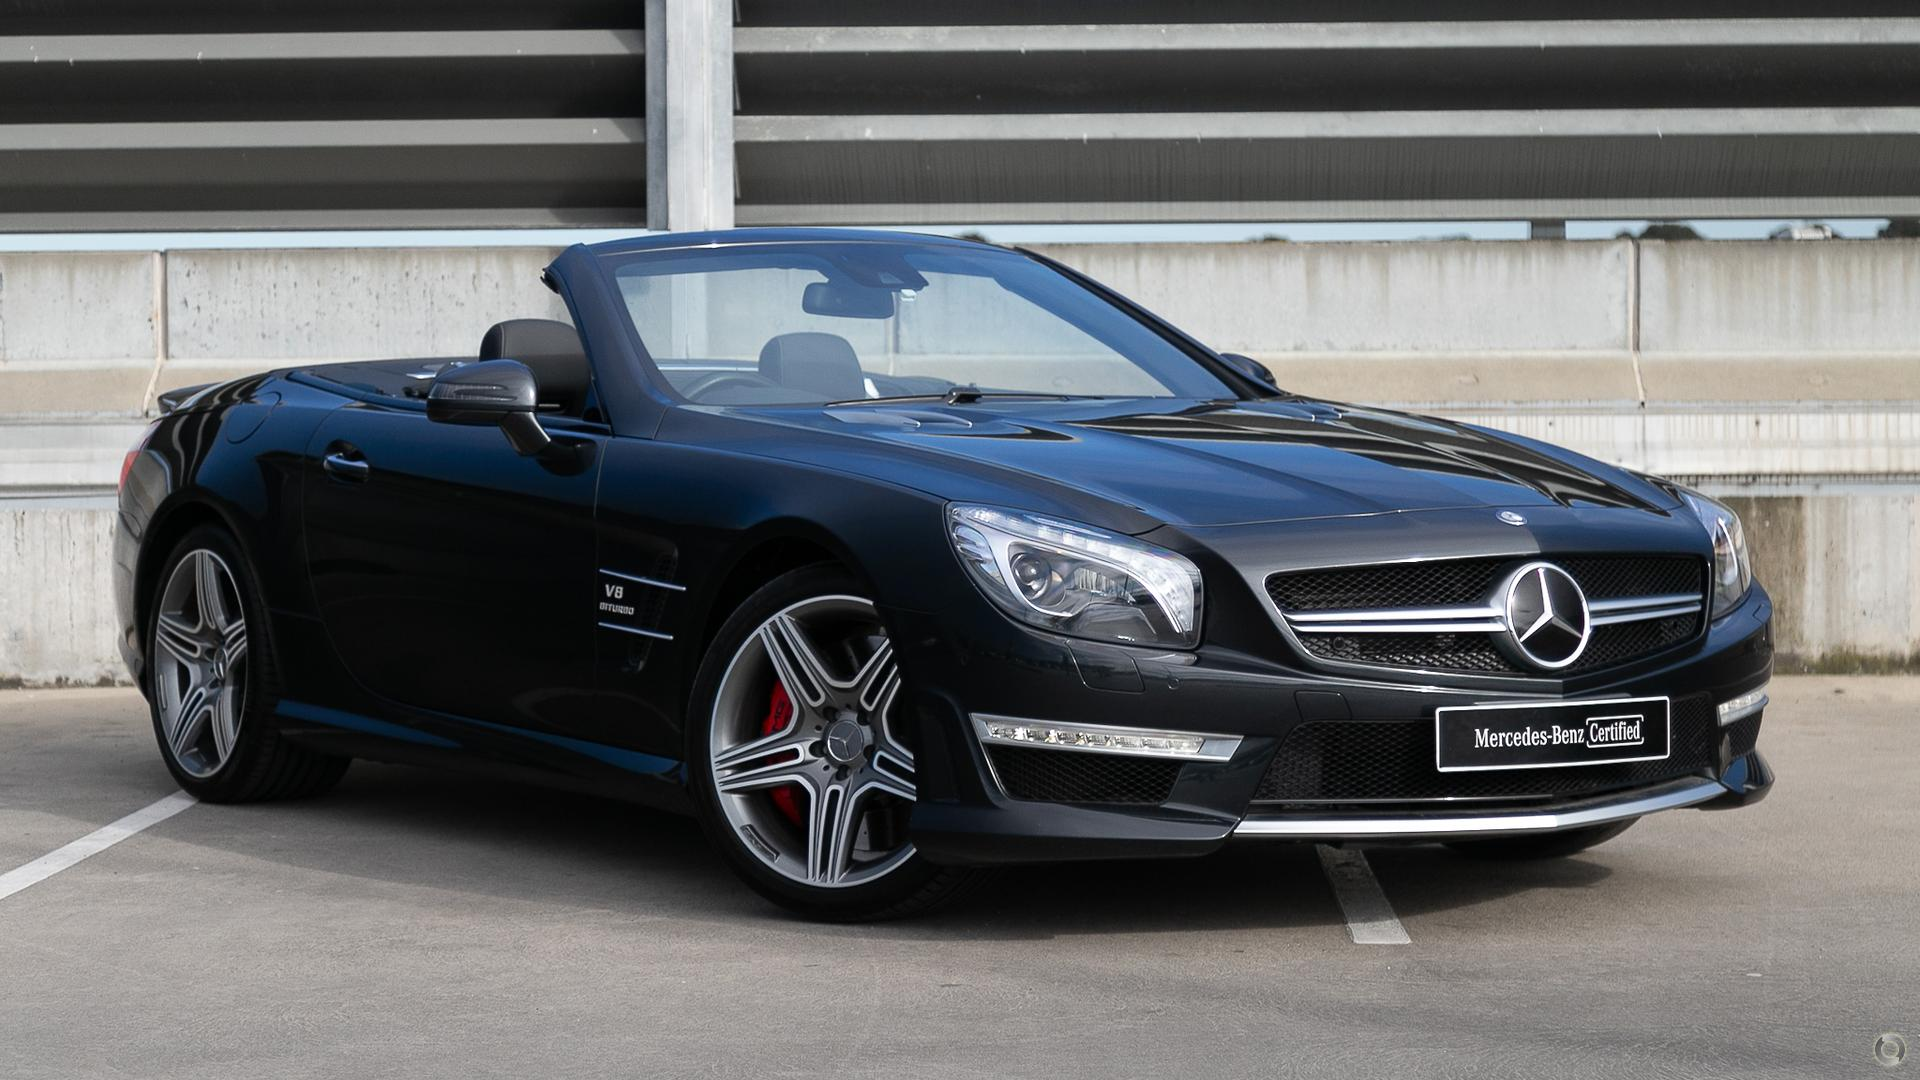 2014 Mercedes-Benz SL 63 AMG Roadster